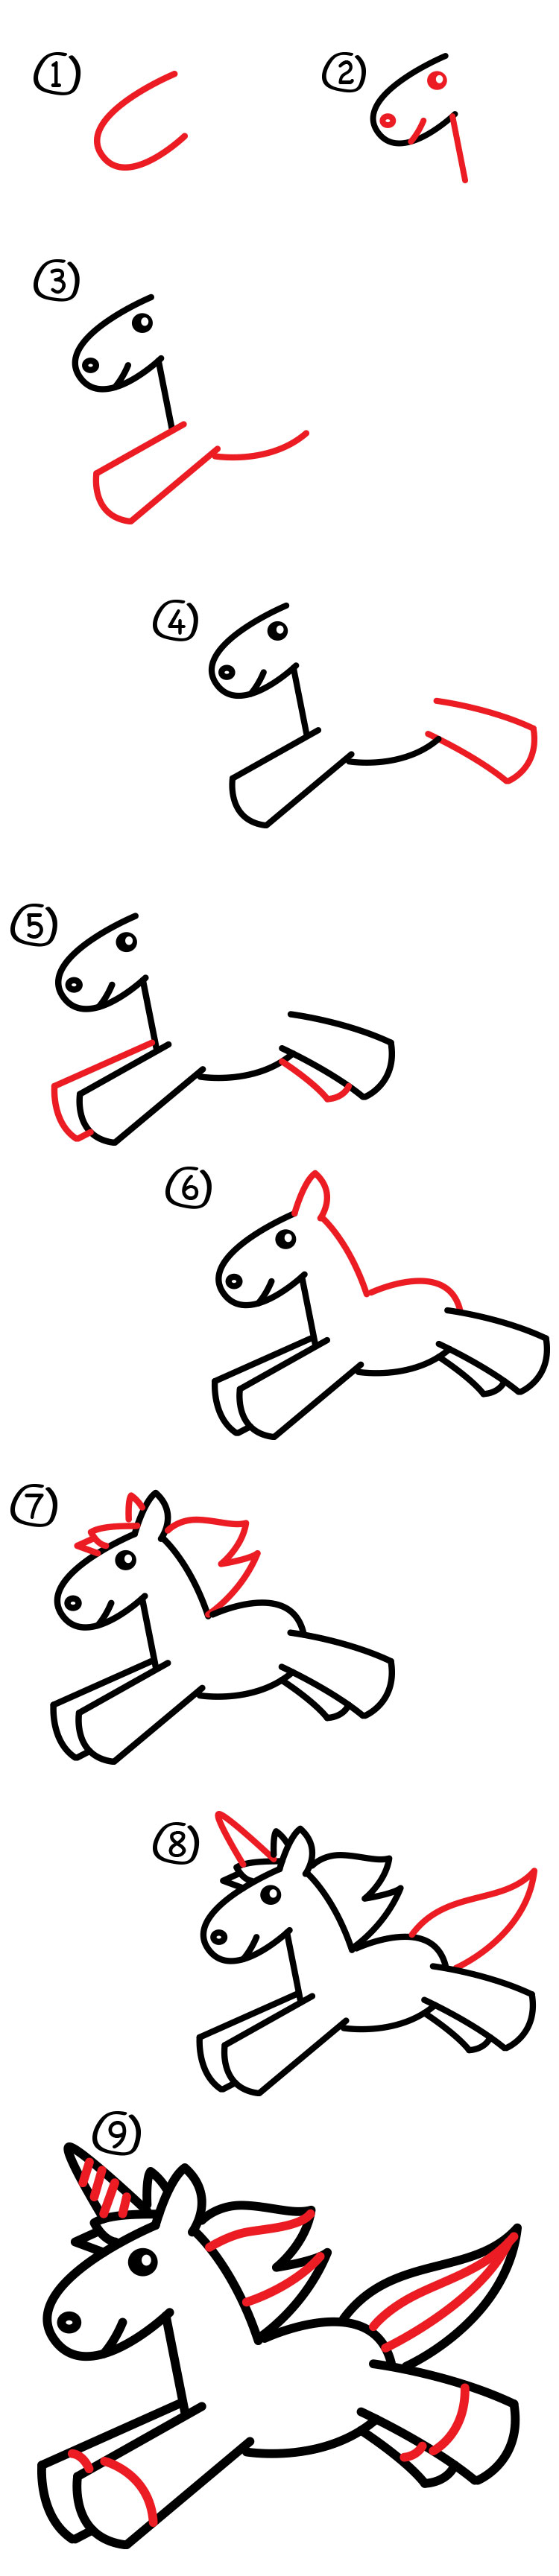 How To Draw A Unicorn For Kids